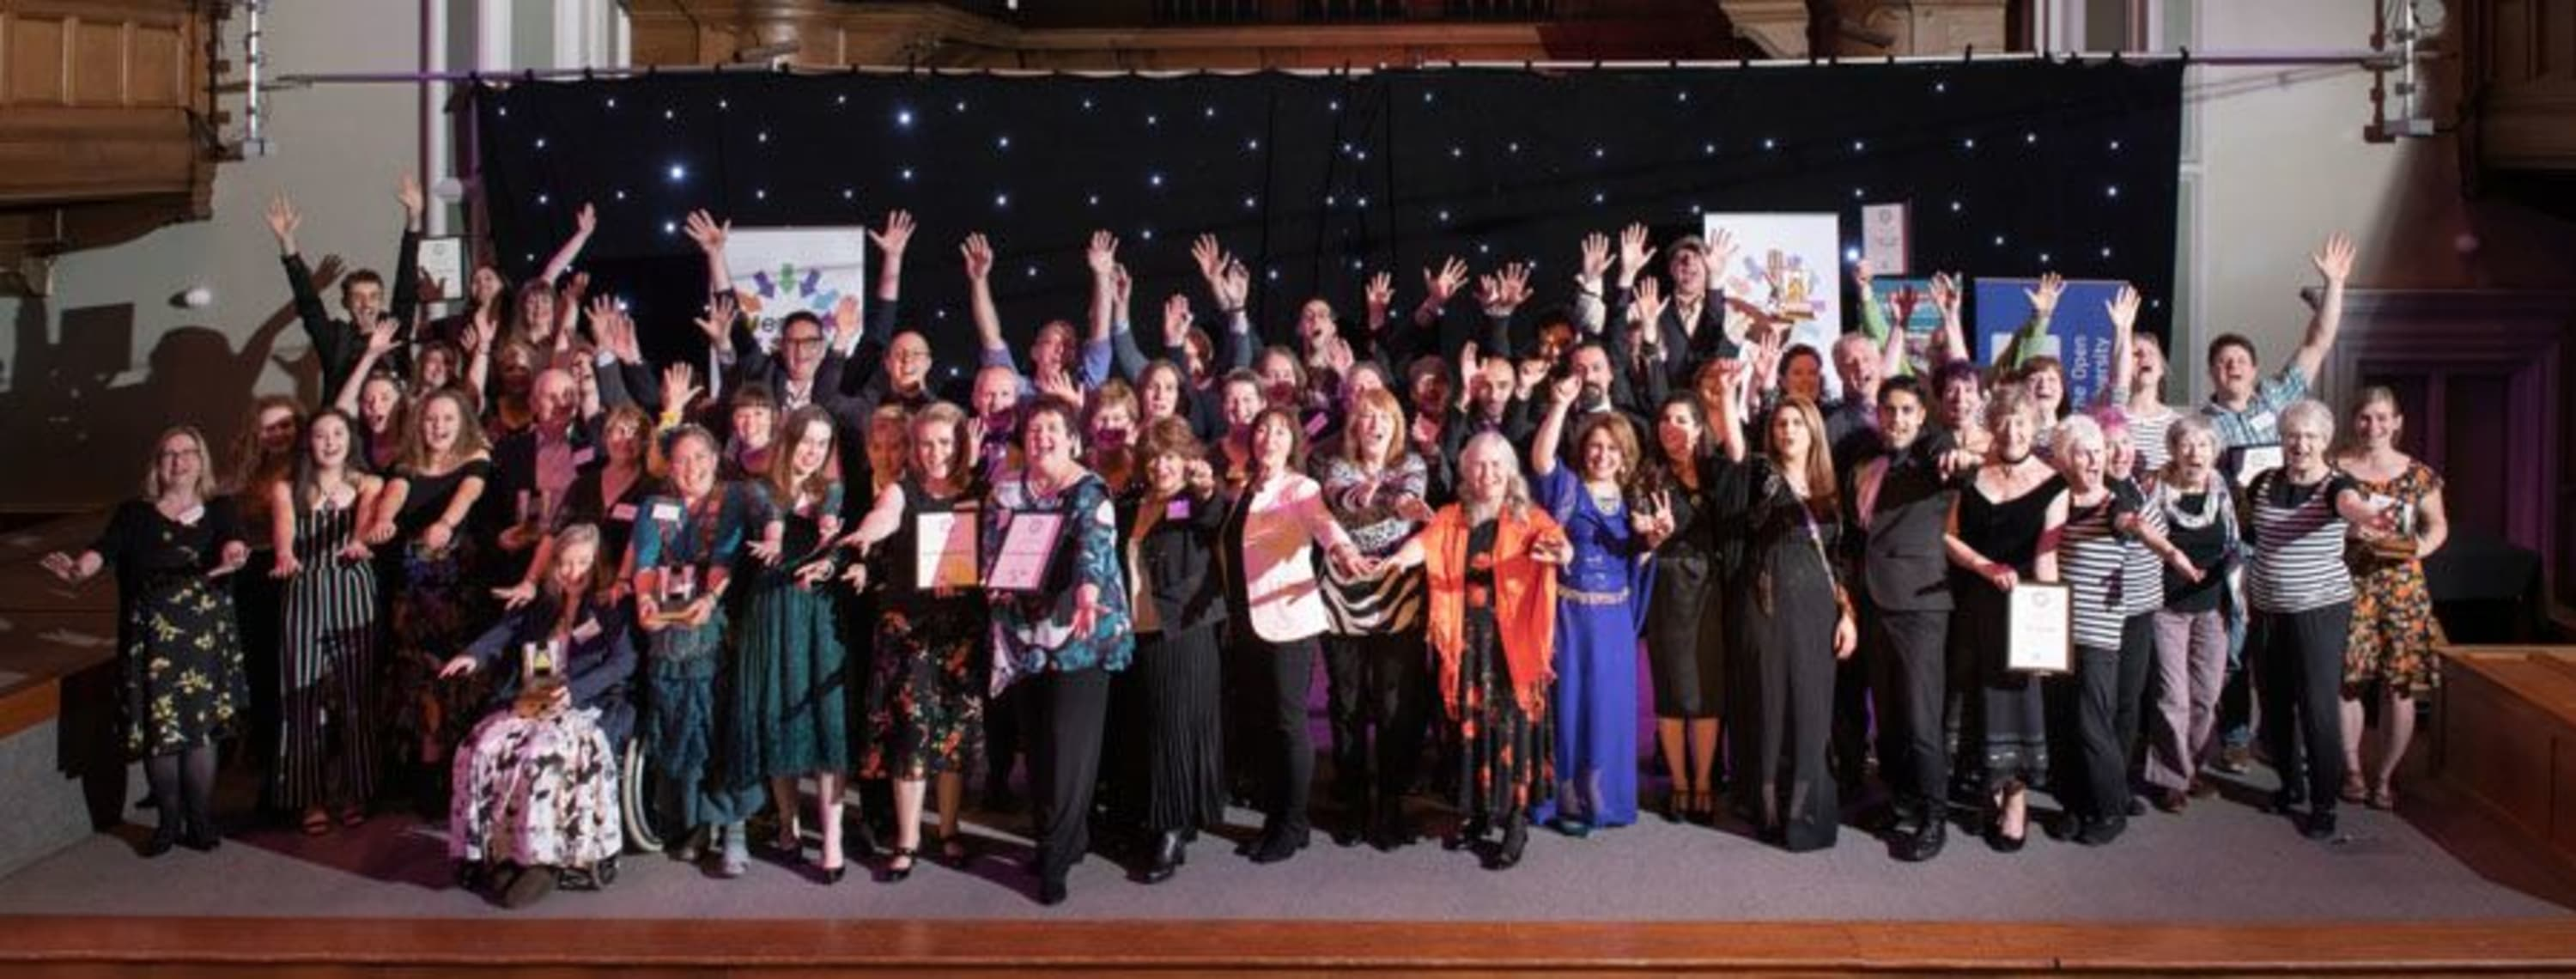 Epic Awards 2019 ceremony - group photo banner